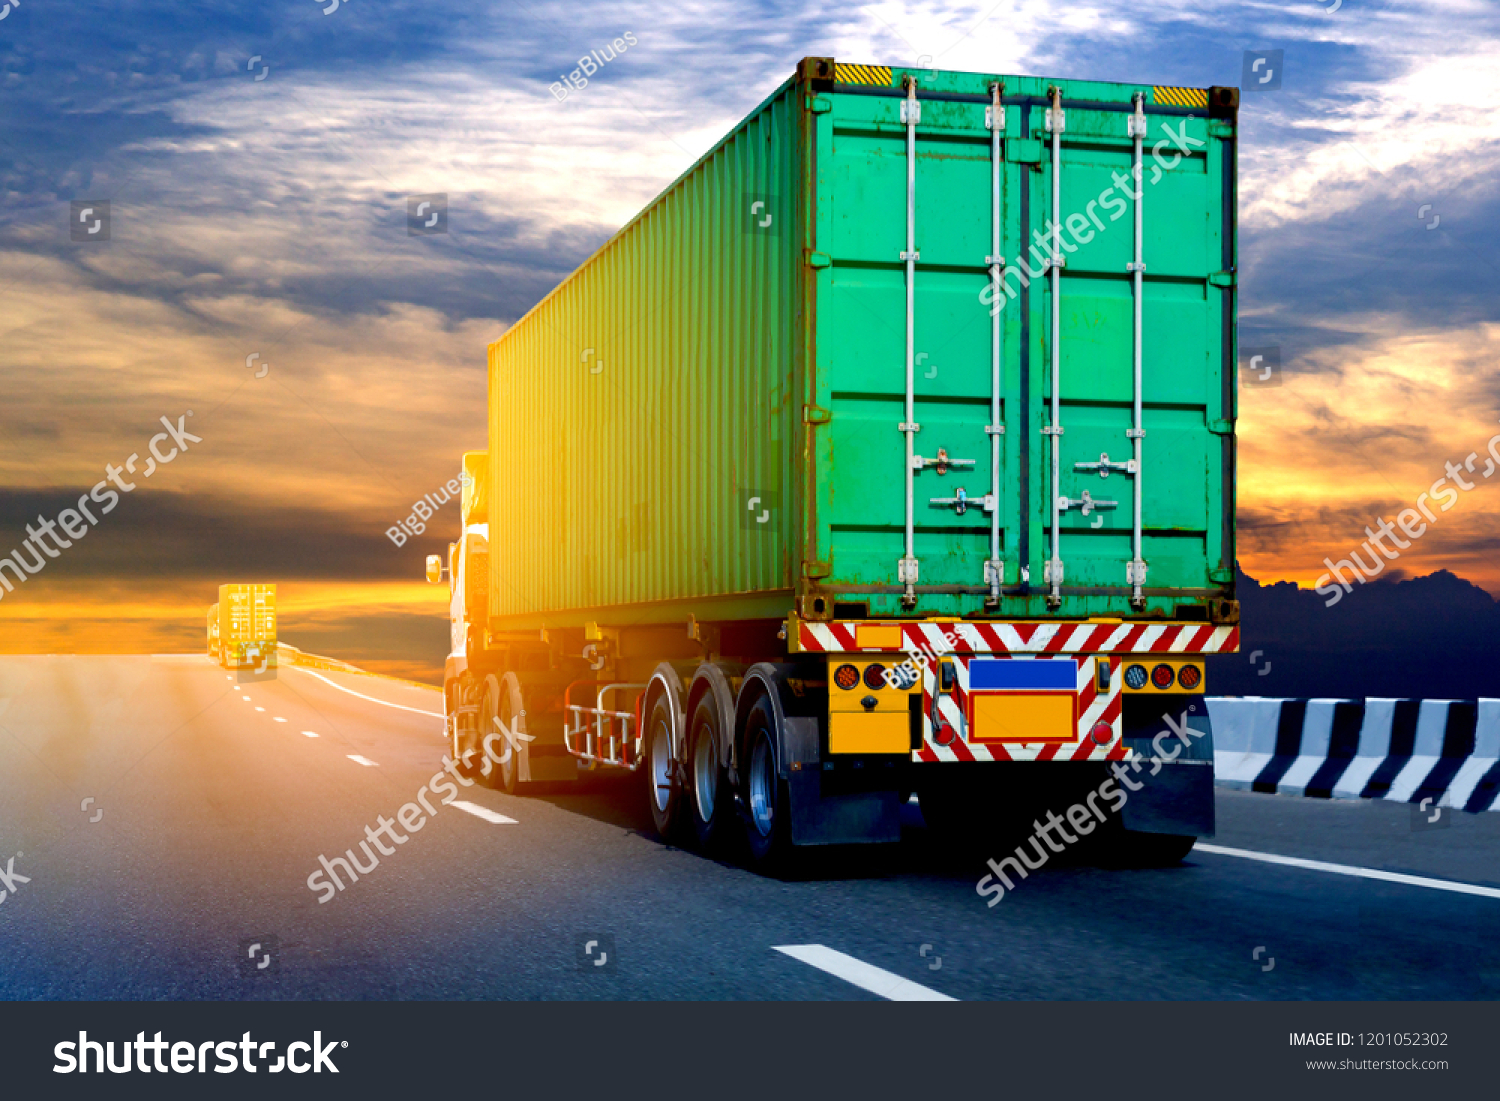 White Truck on highway road with green  container, transportation concept.,import,export logistic industrial Transporting Land transport on the asphalt expressway Against Sky During Sunset #1201052302